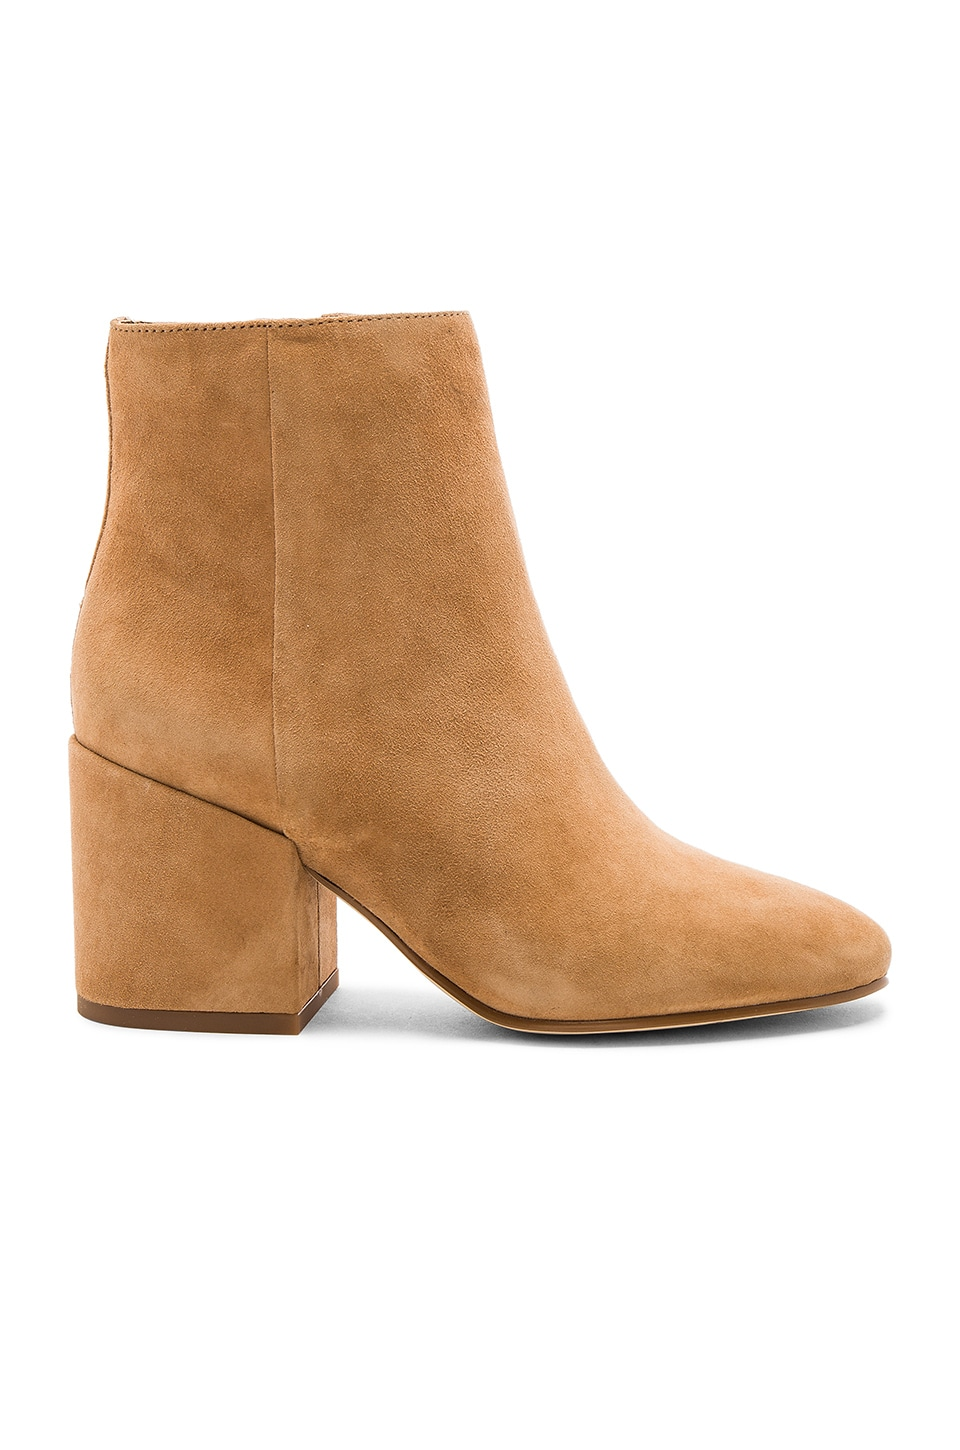 Sam Edelman Taye Bootie in Golden Caramel